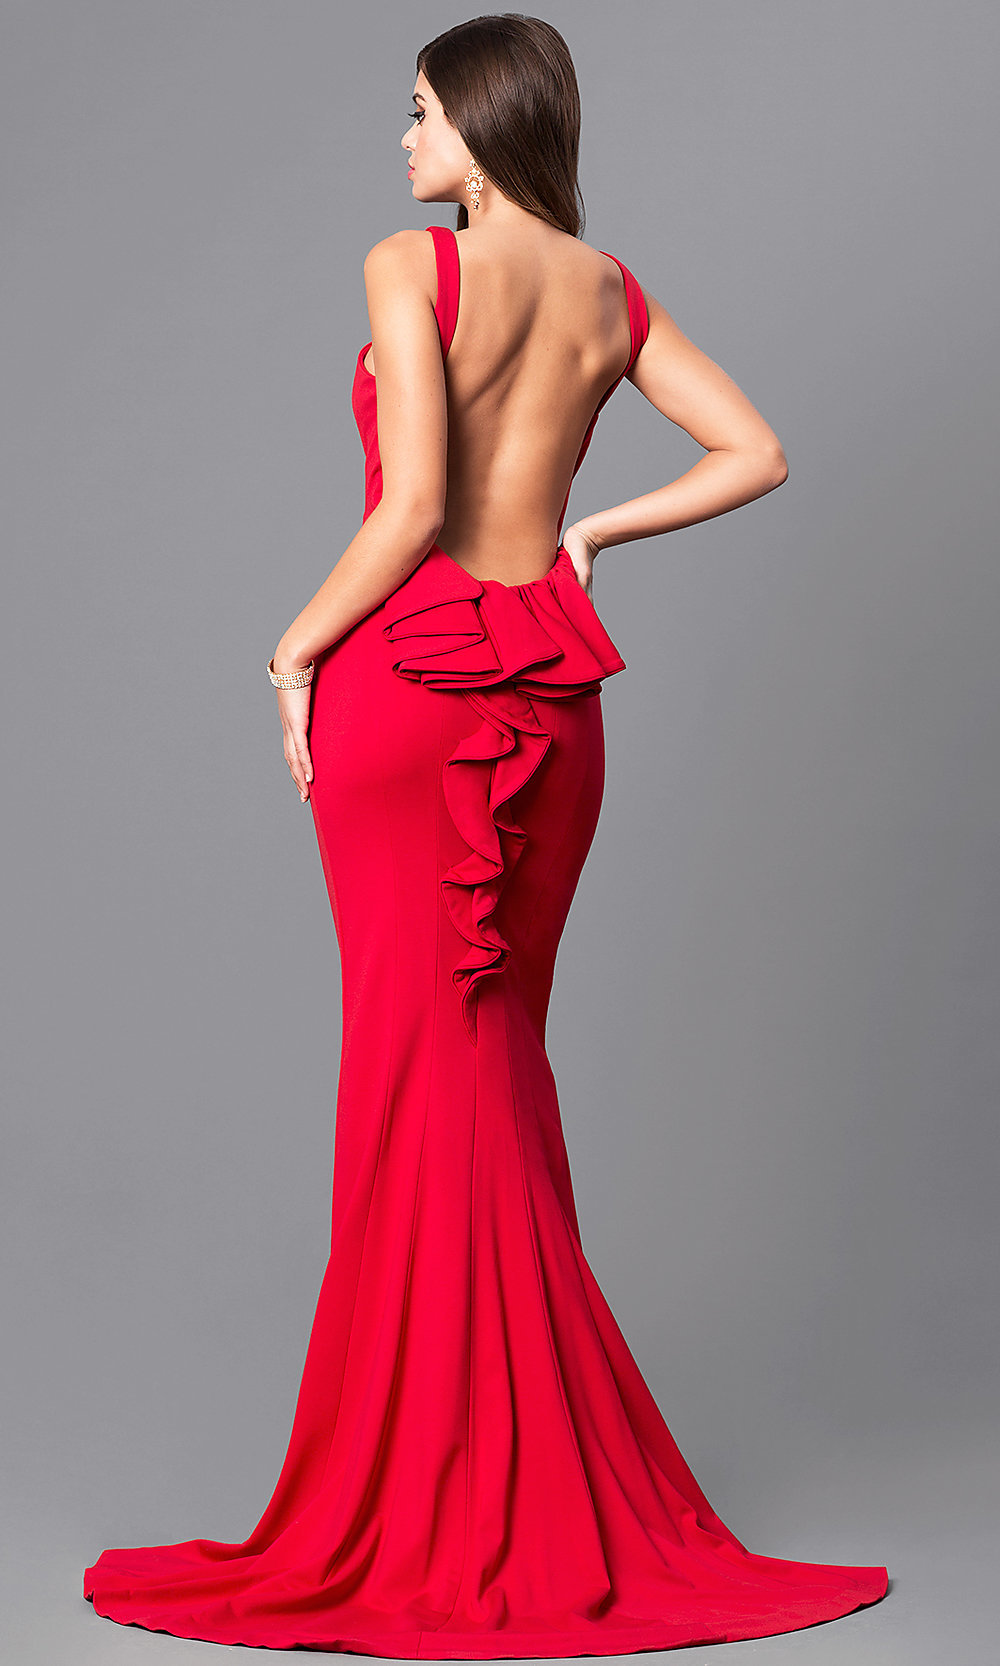 Mermaid Open-Back Prom Dress with Bustle - PromGirl